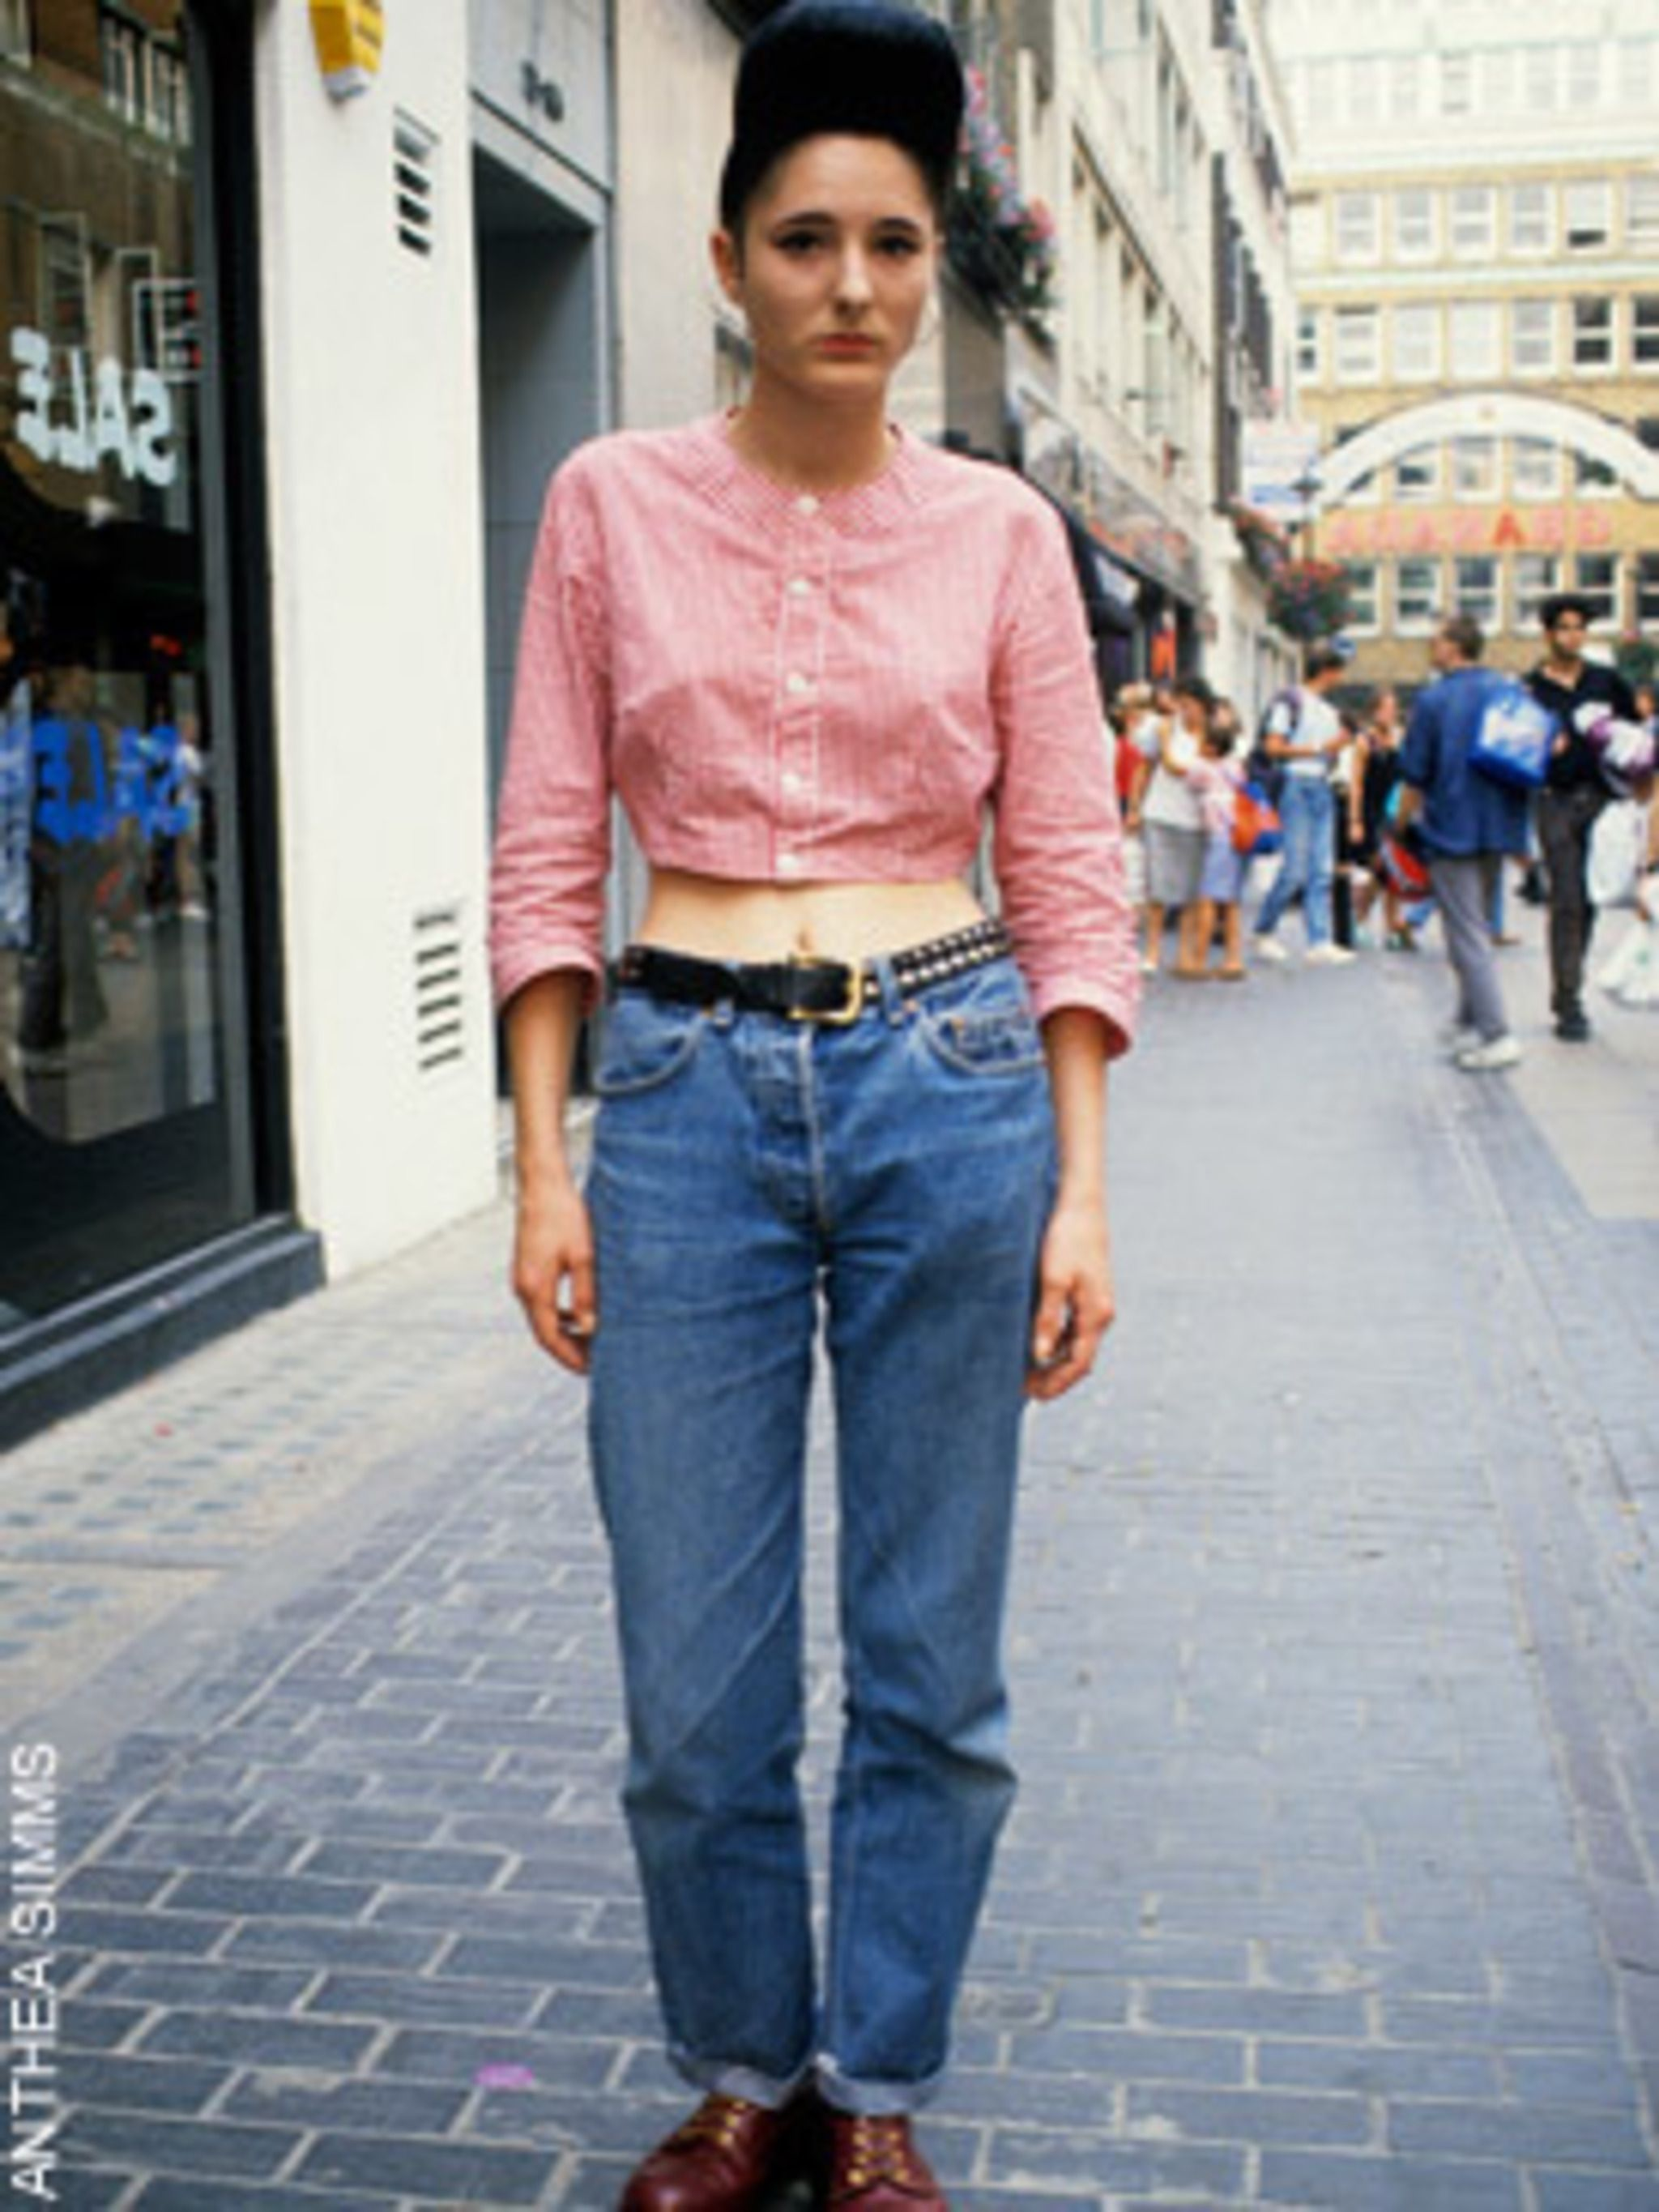 "<p>Rolled hem, high waisted<a href=""http://www.elleuk.com/starstyle/celebrity-trends/%28section%29/Everyone-s-Wearing-Rolled-up-jeans""> jeans </a>with <a href=""http://www.elleuk.com/starstyle/celebrity-trends/%28section%29/Everyone-s-Wearing-DM-Boots"">DMs"